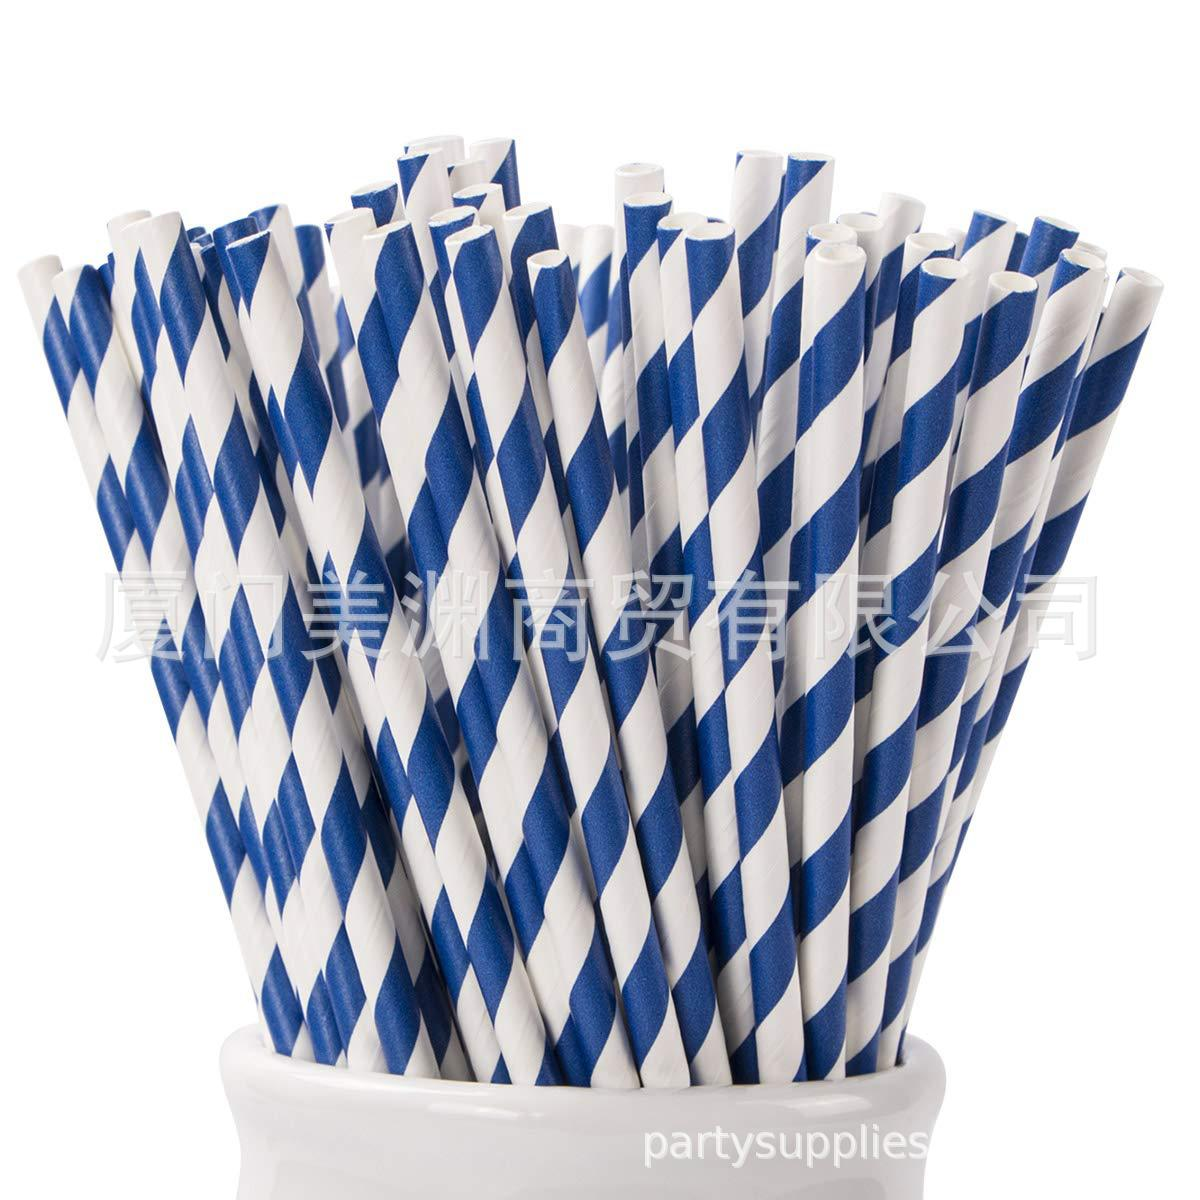 Europe And America Paper Originality Straw Disposable Paper Straw Manufacturers Environmentally Friendly Biodegradable Color Blu